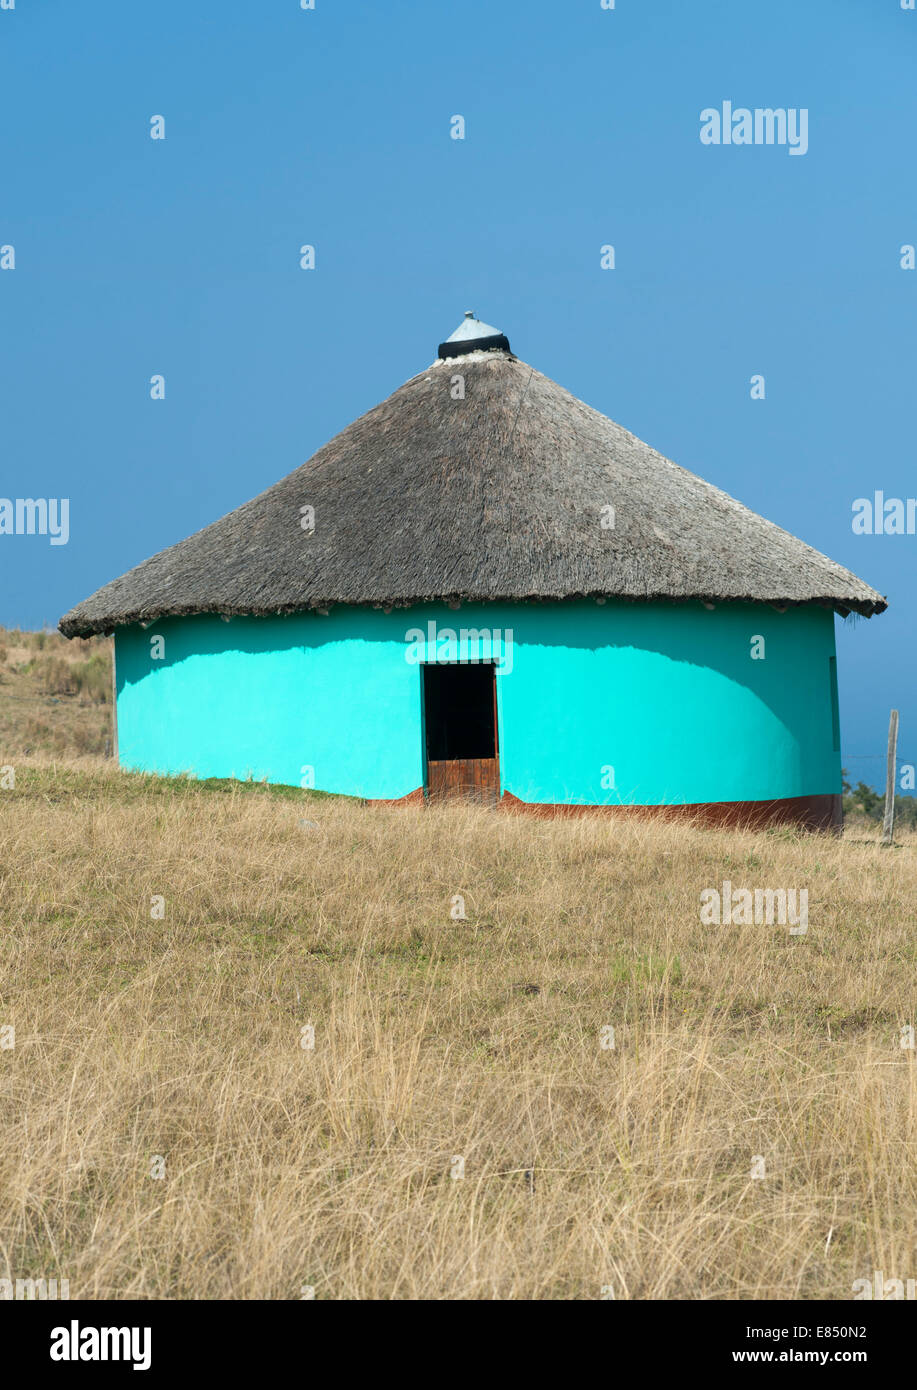 Xhosa hut in the Eastern Cape Province of South Africa. - Stock Image